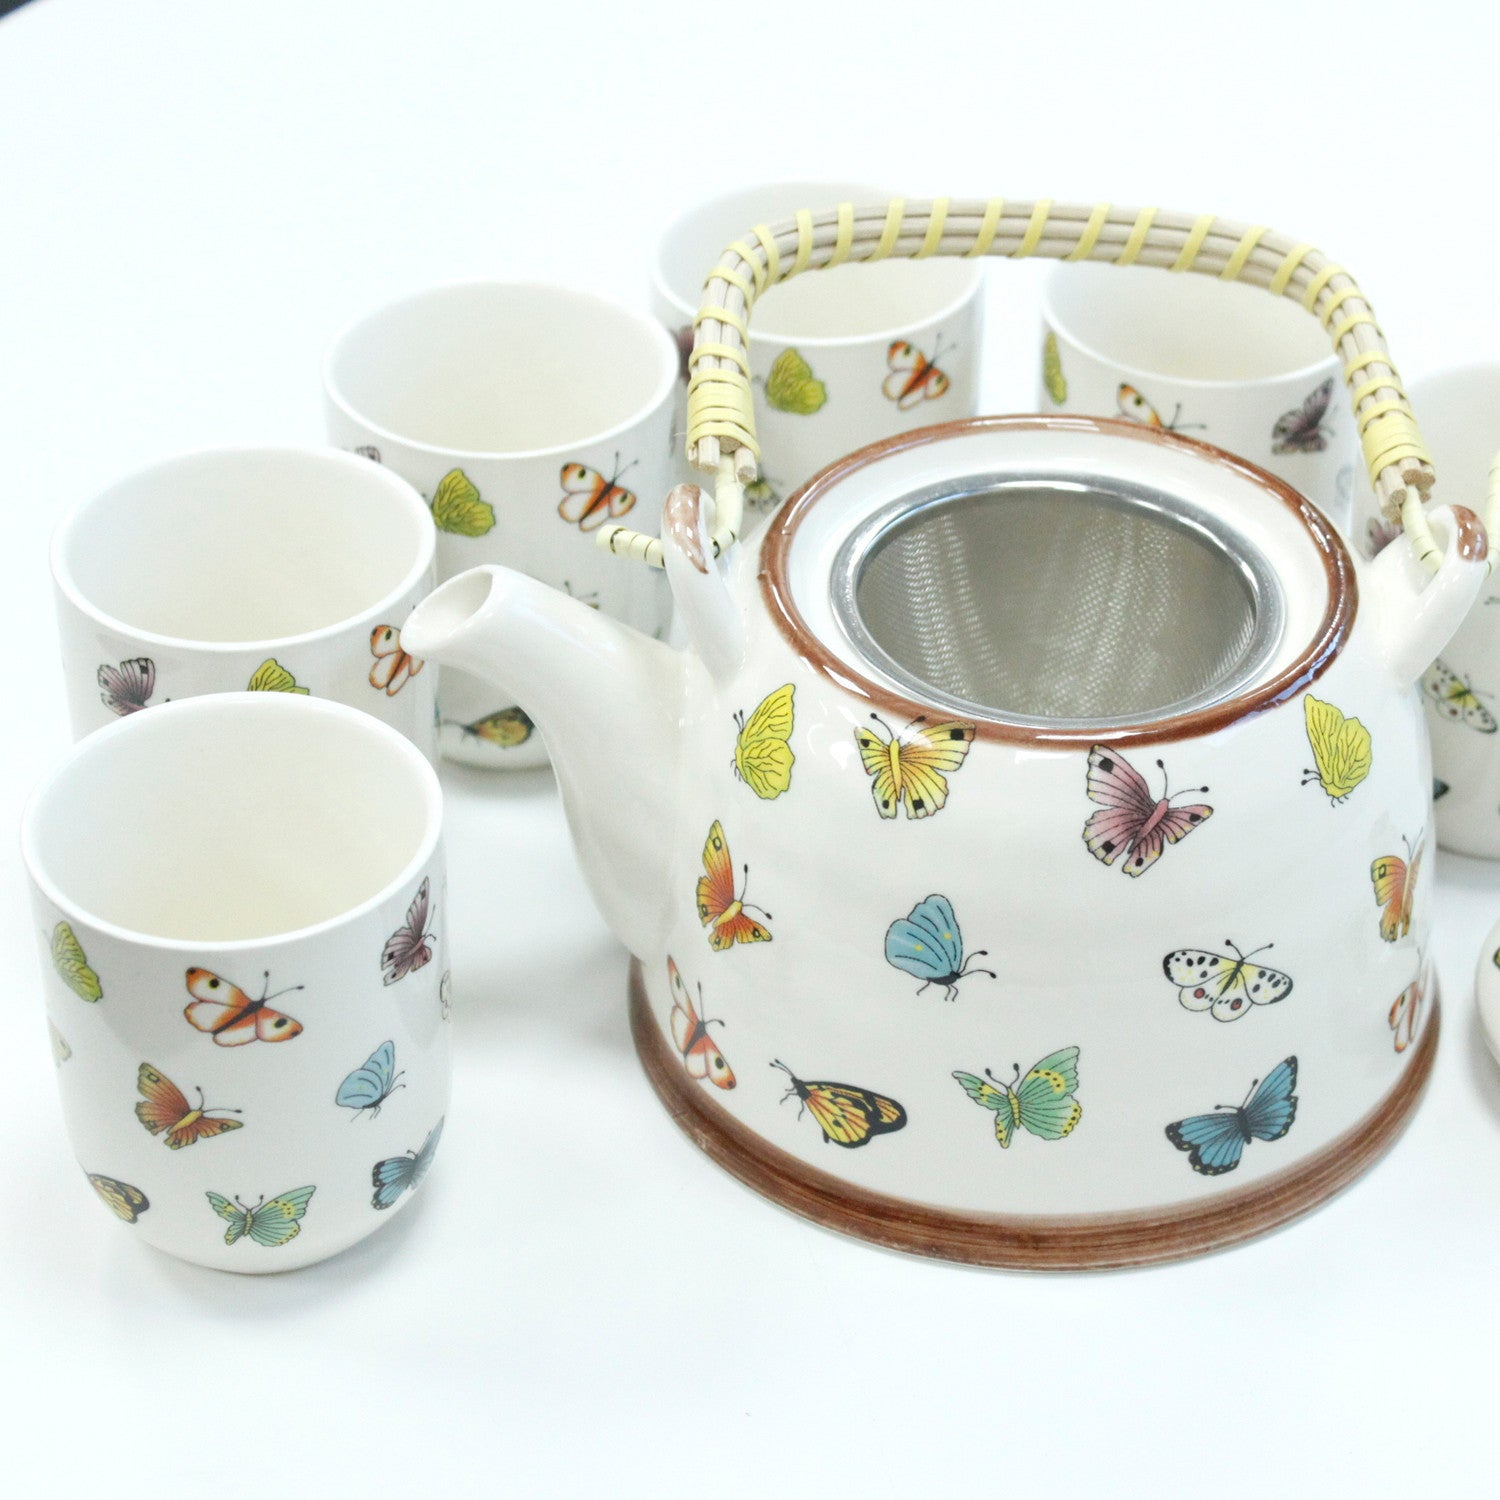 Herbal Teapot Set - Butterflies, Kitchen & Dining by Gifts24-7